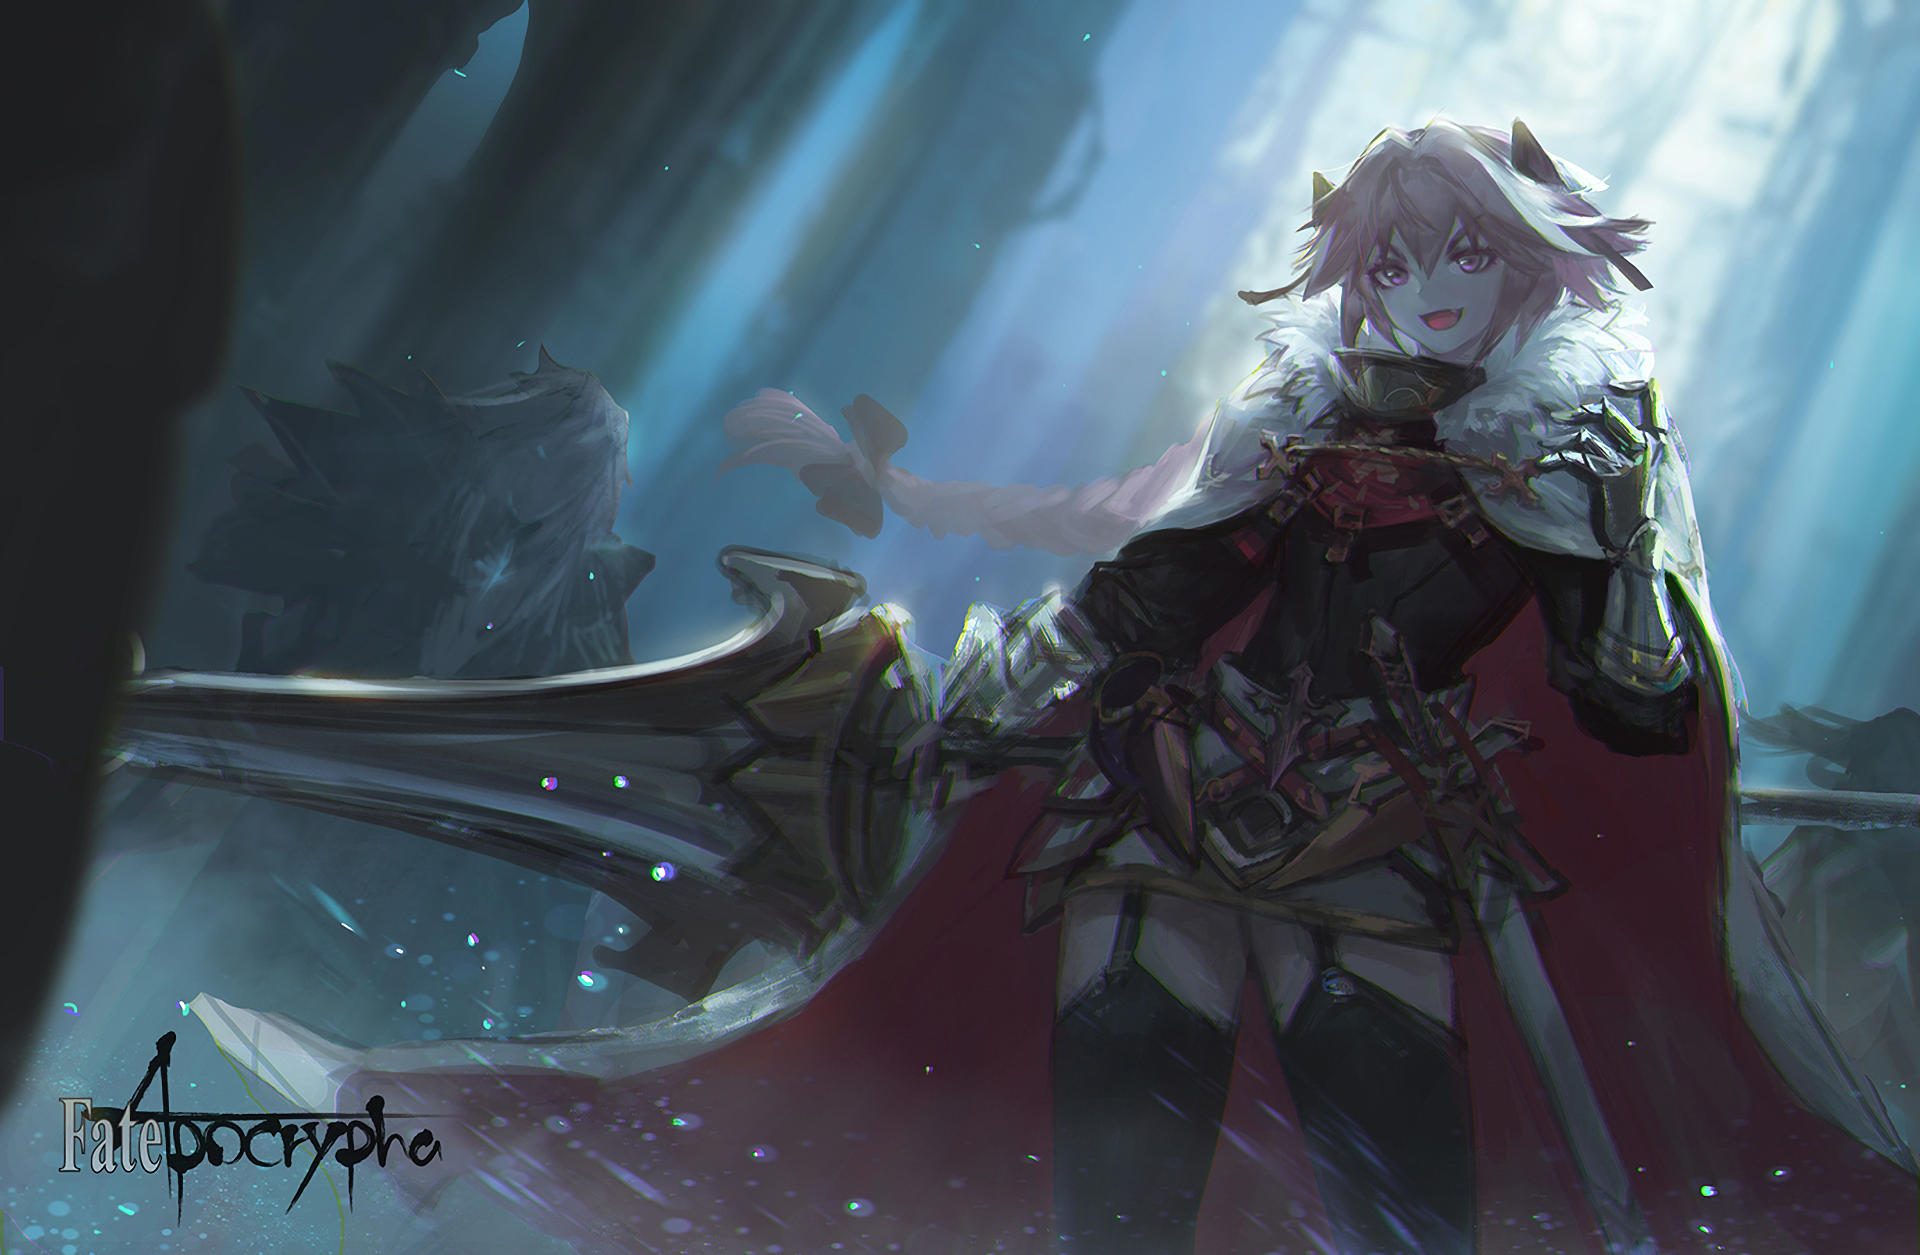 59 Astolfo Fate Apocrypha Hd Wallpapers Background Images Wallpaper Abyss